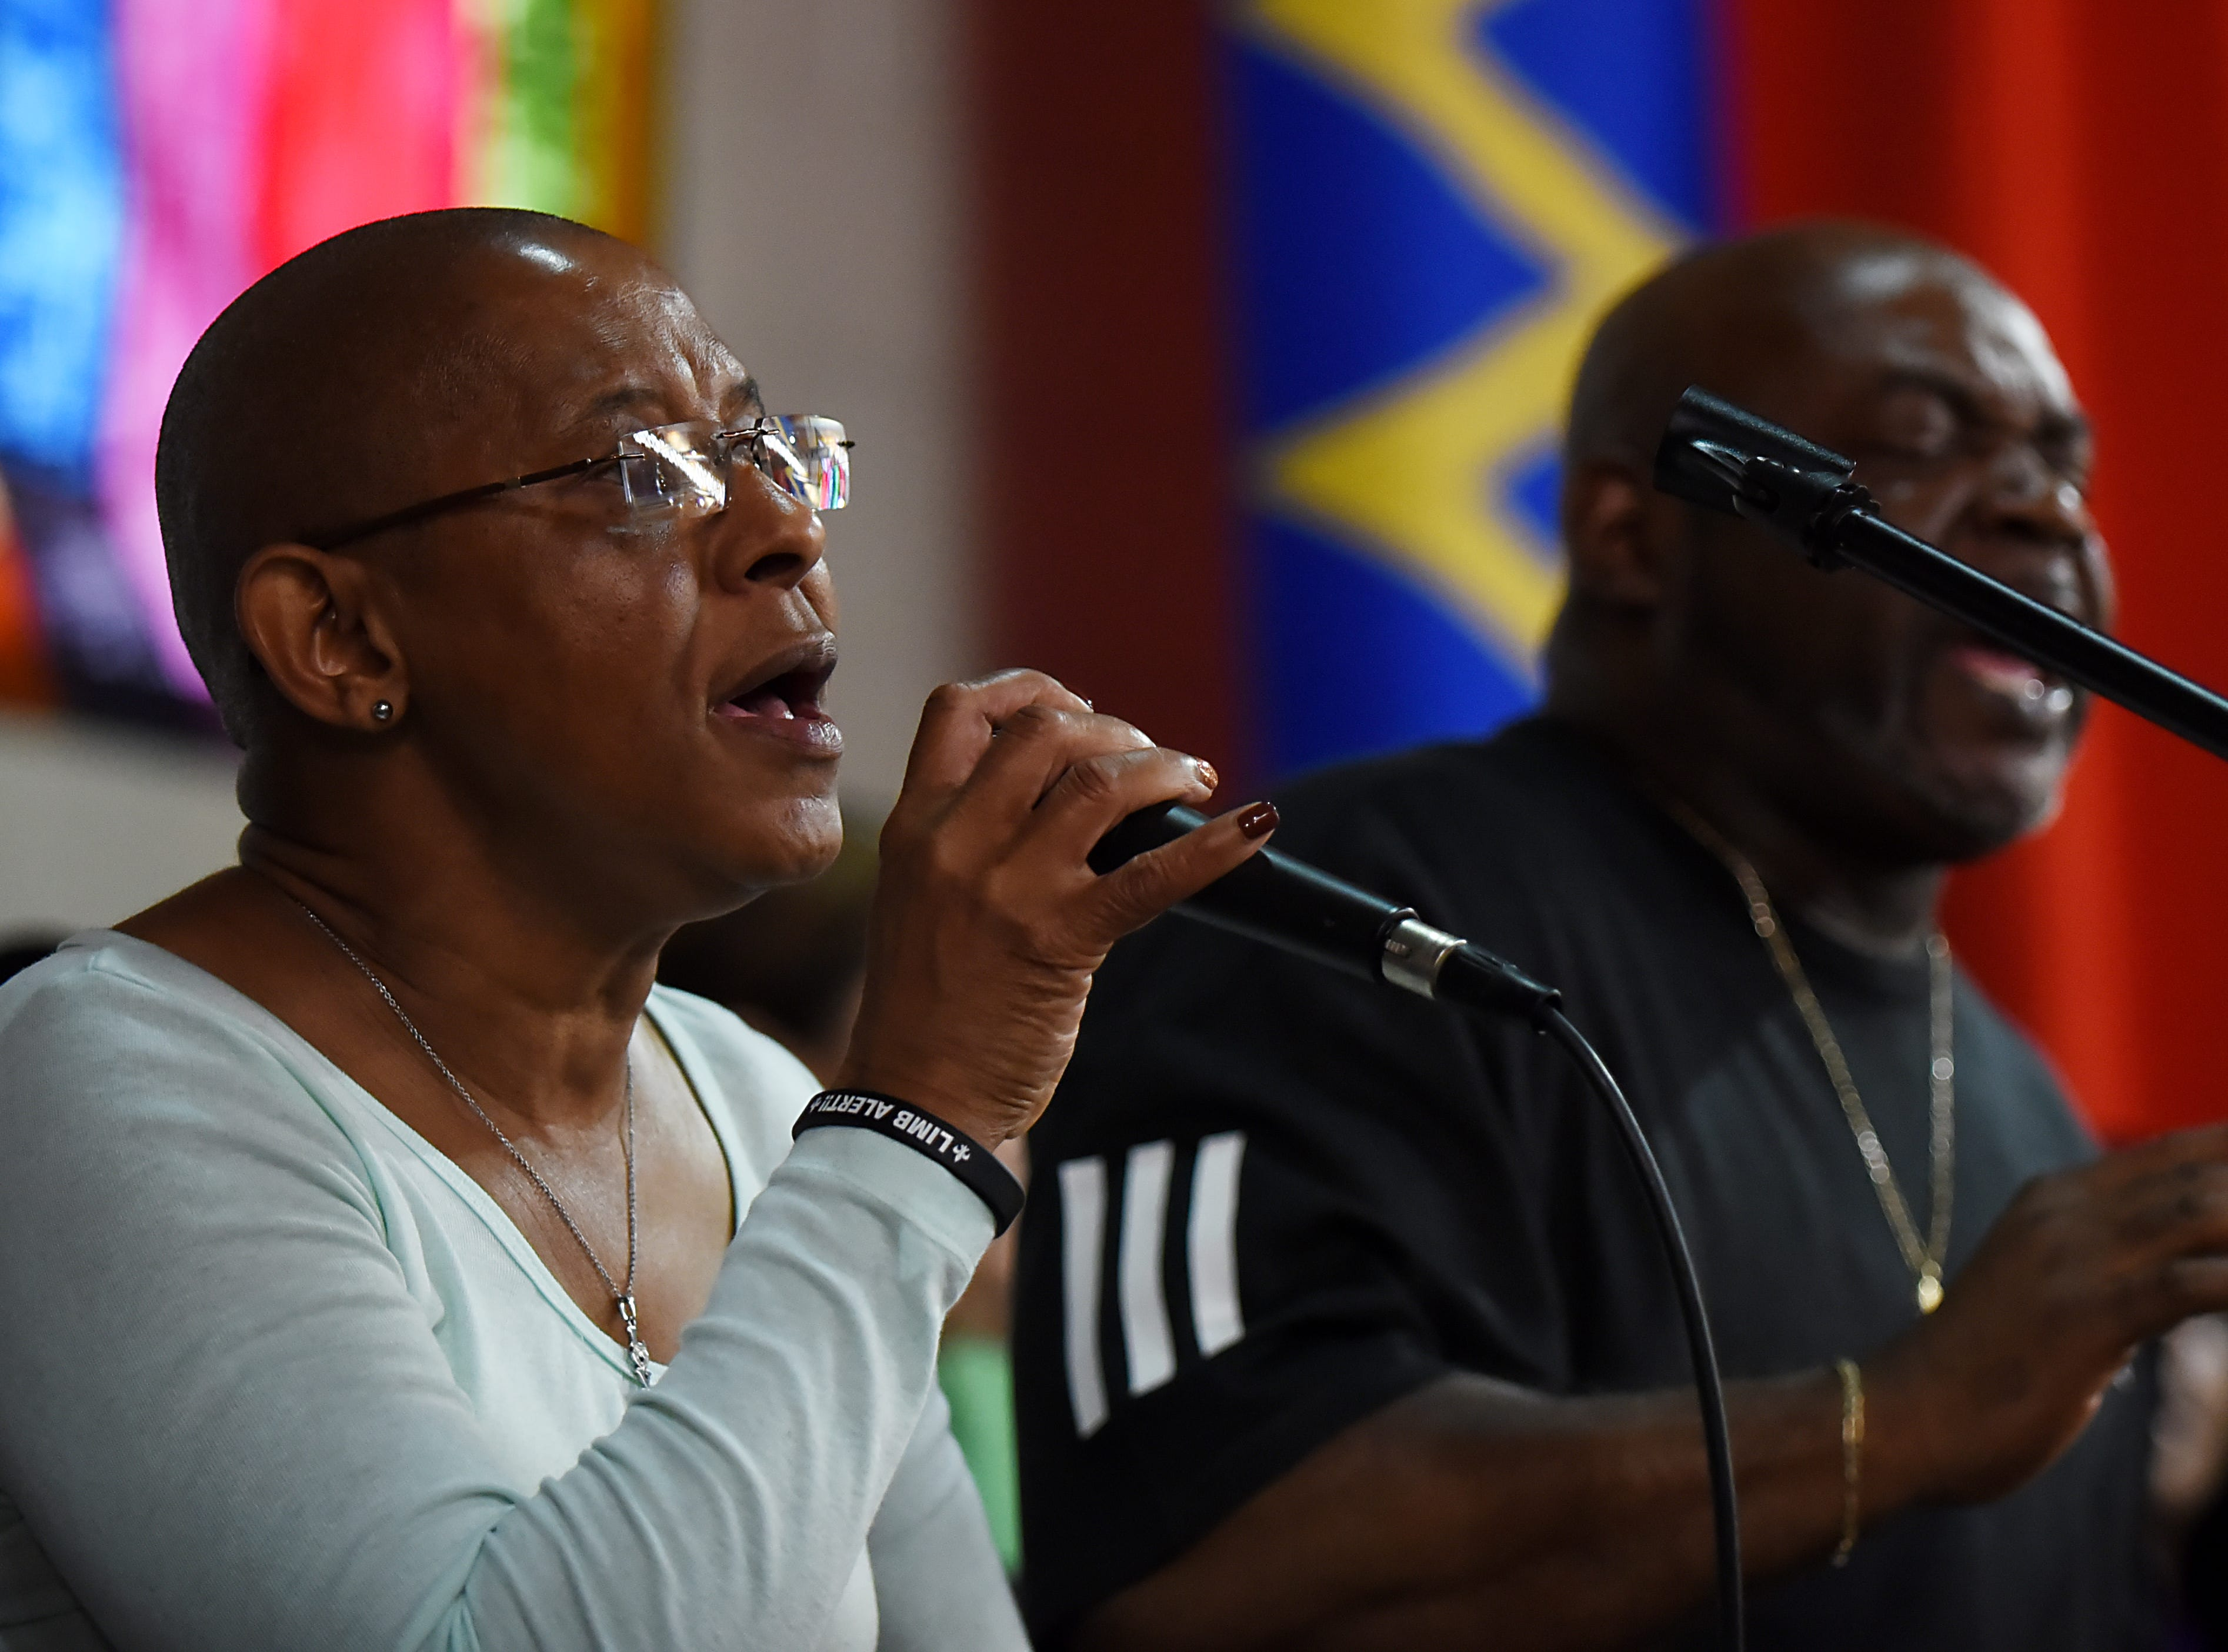 (From left) Pat Solomon and Irv DeBois, singers in the Straight and Narrow Choir, practice at the Straight and Narrow great hall in Paterson on Saturday October 13, 2018.